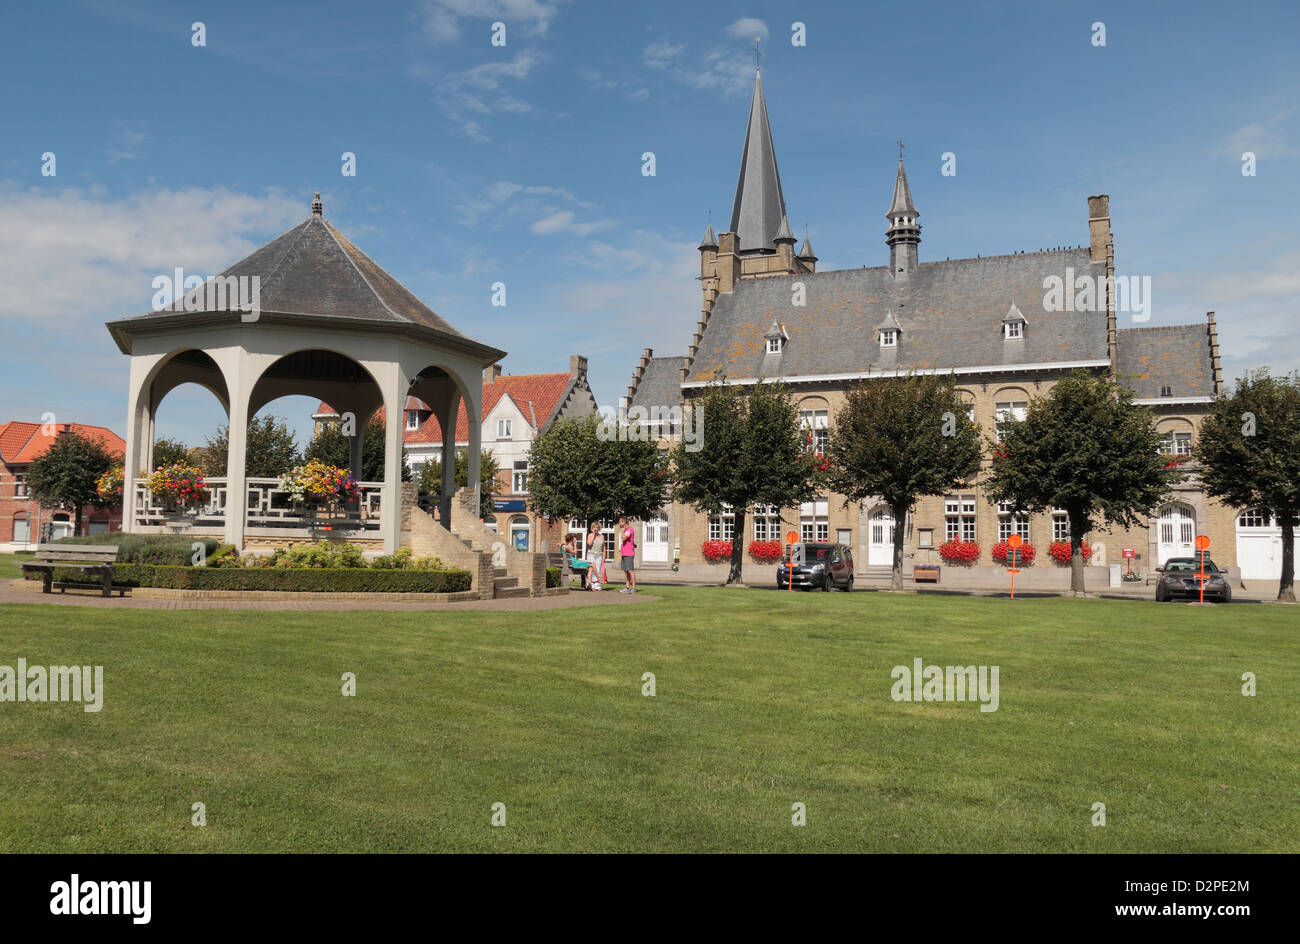 View through the village square past the bandstand in Wijtschate town centre, West Flanders Heuvelland, Belgium.. - Stock Image